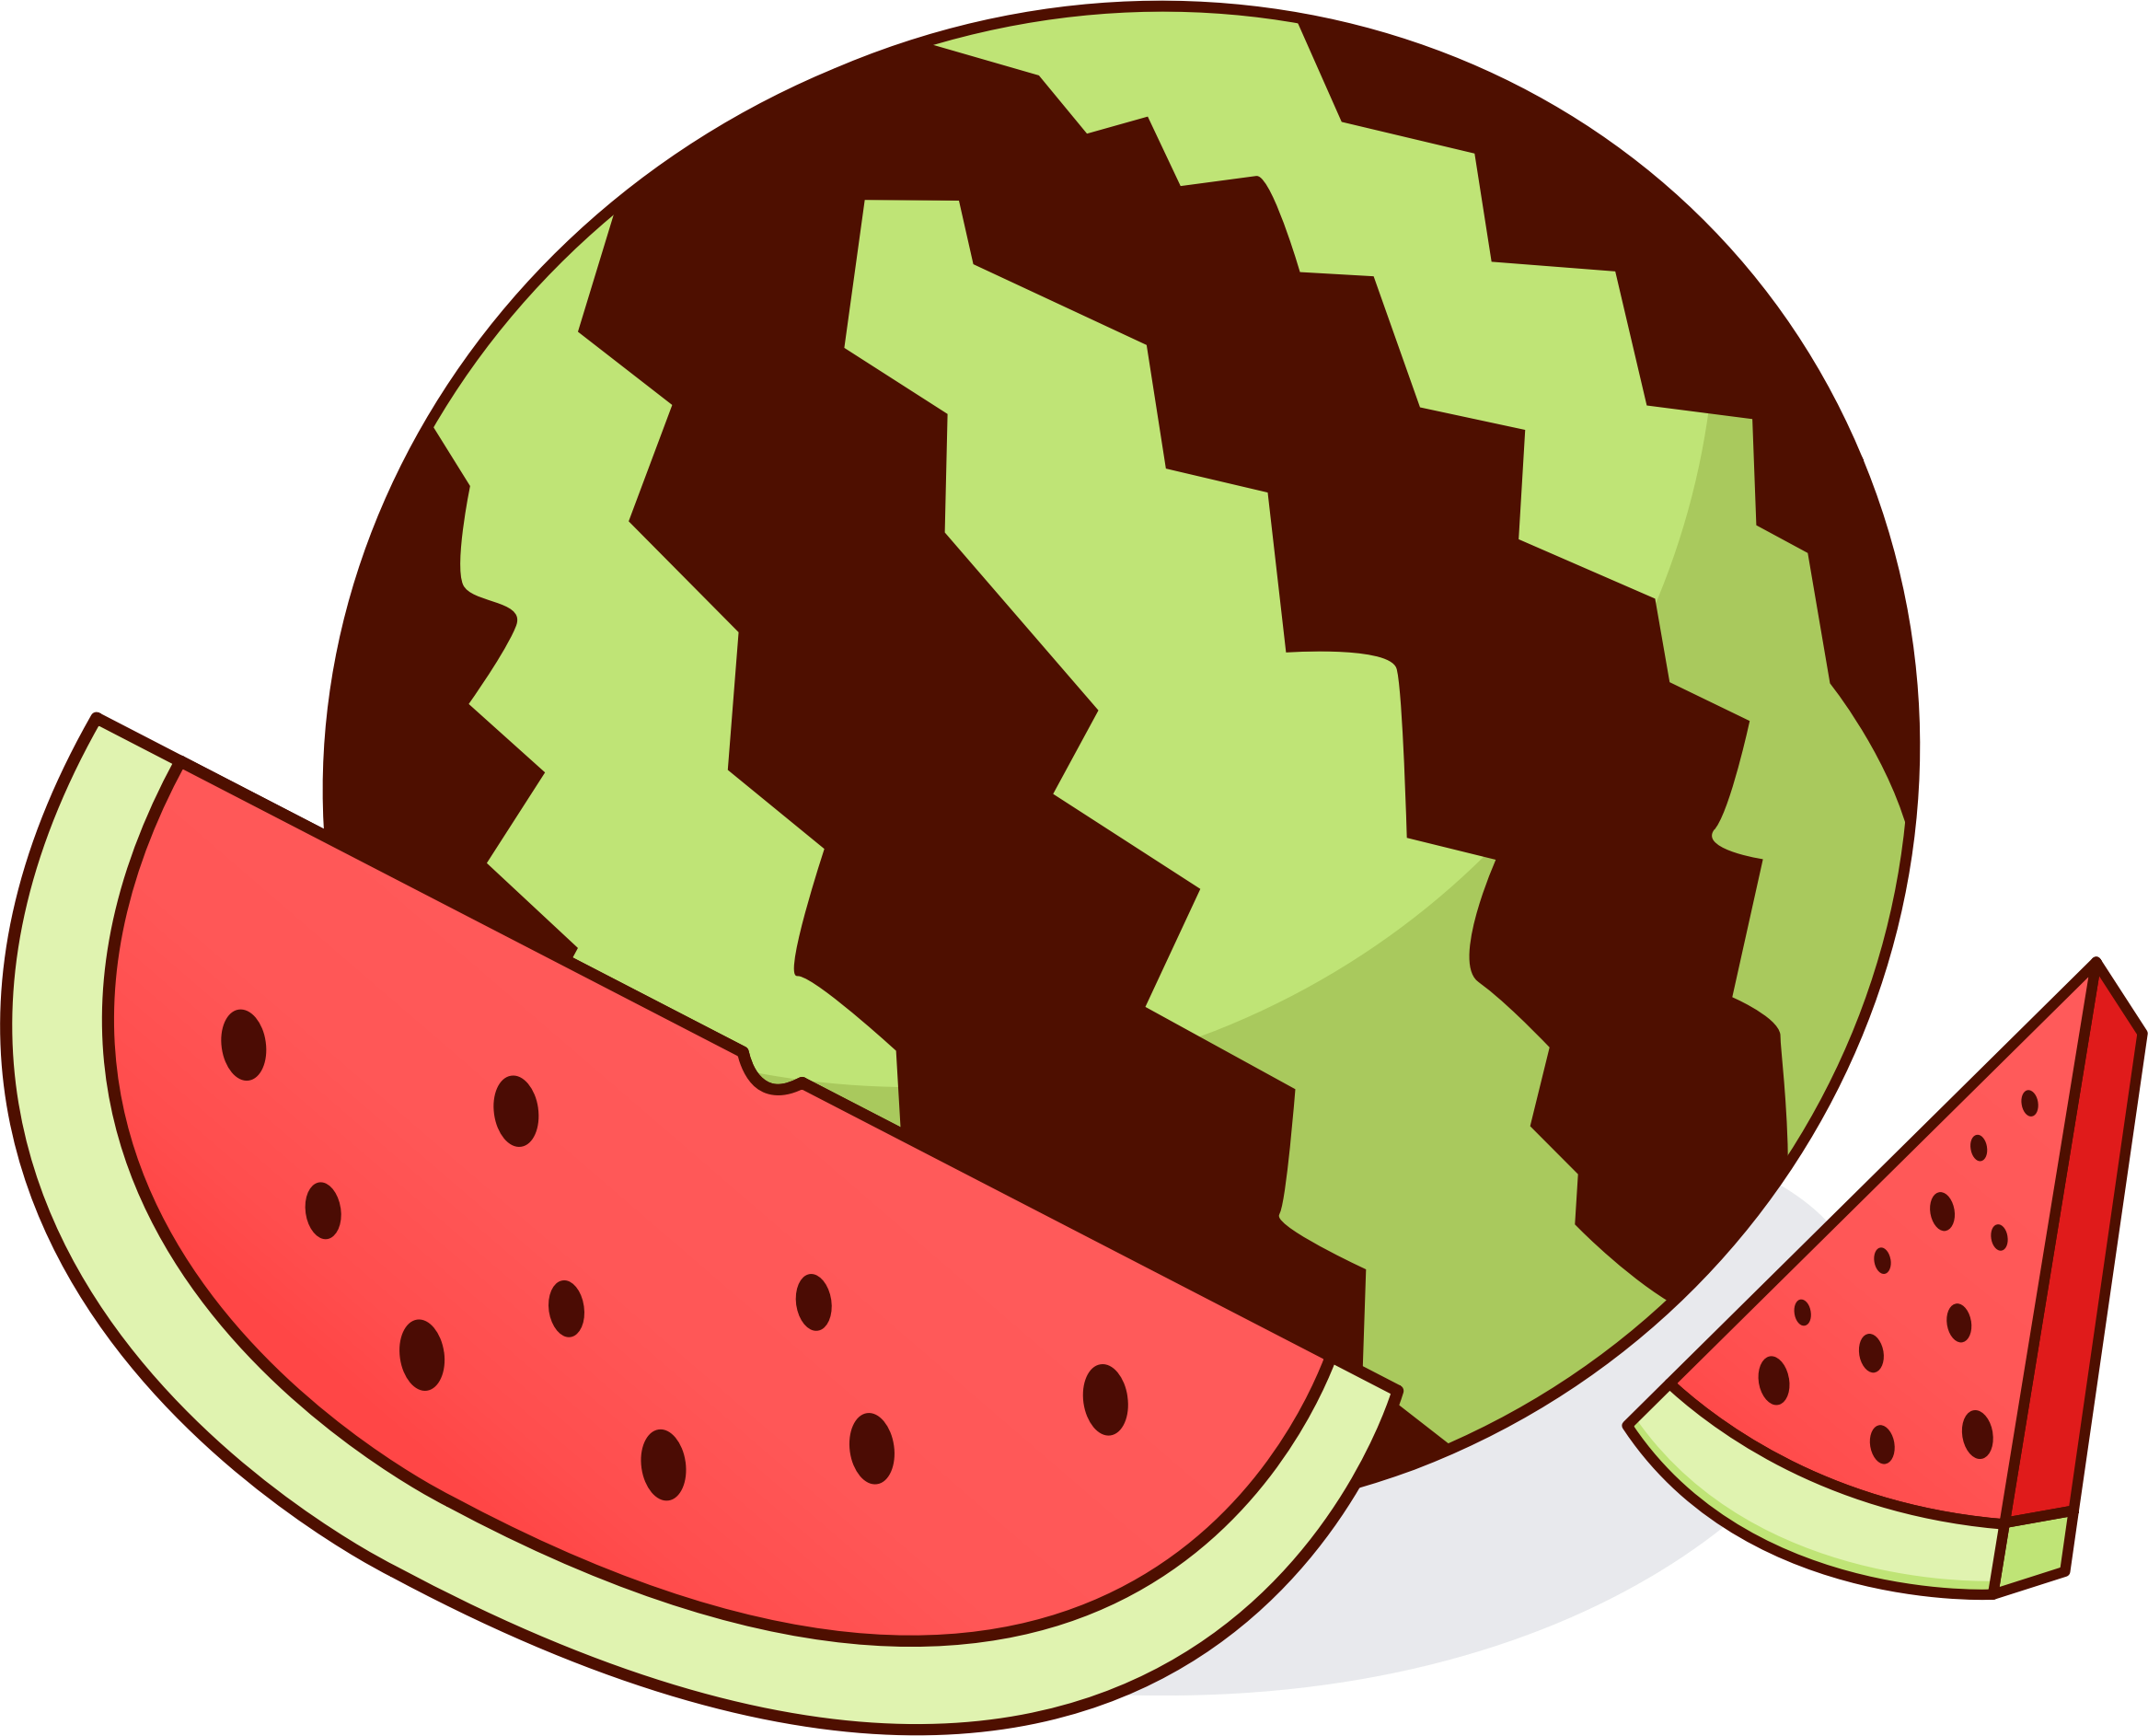 Watermelon clipart animated.  collection of plant